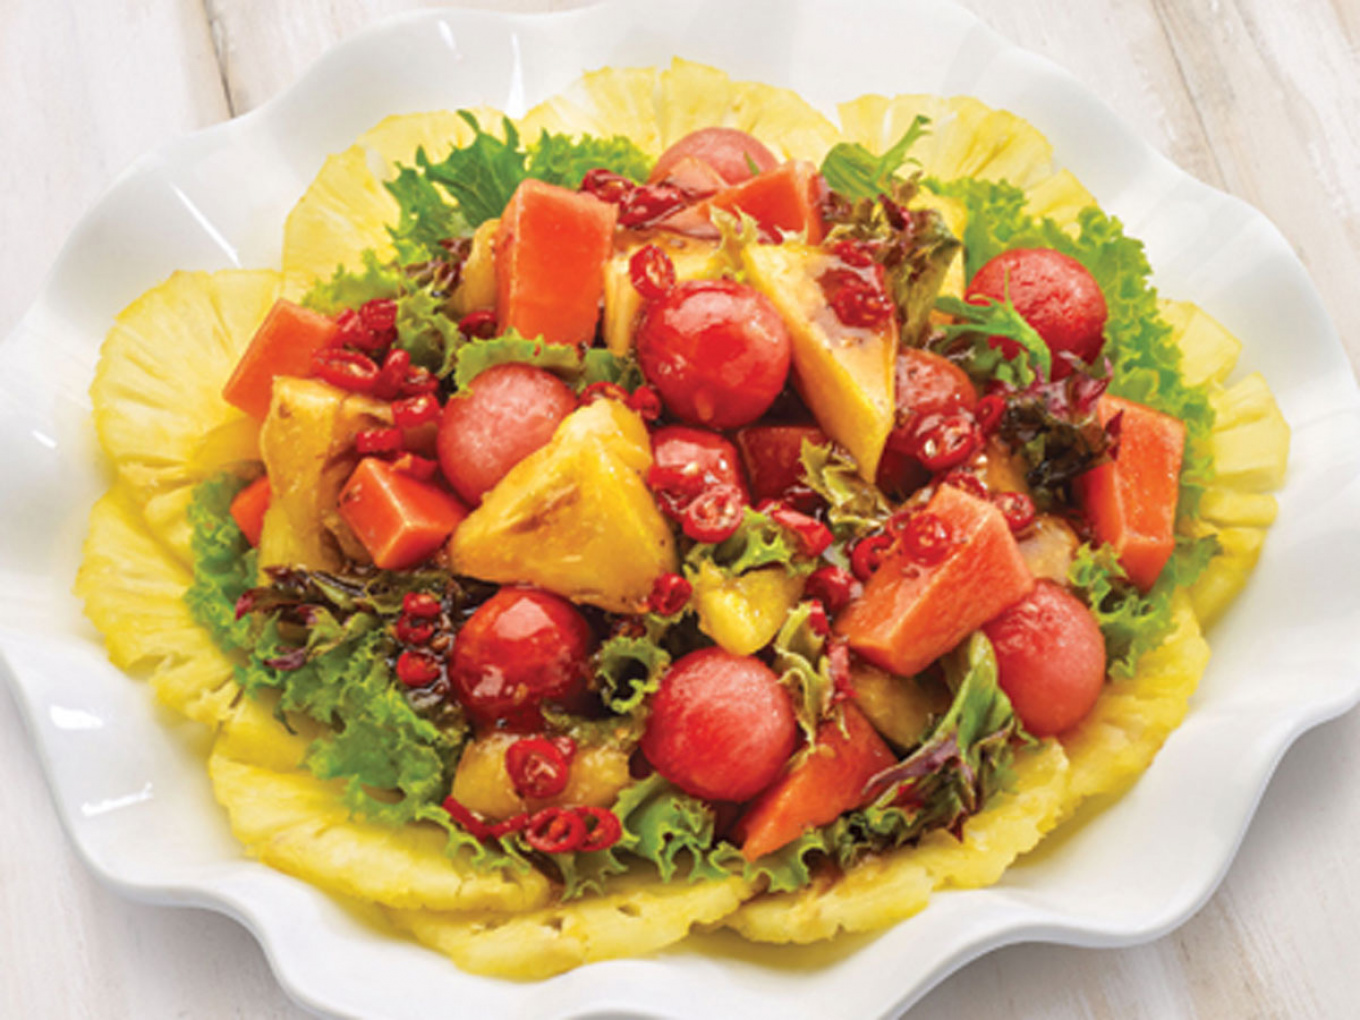 Pineapple Salad with Salad Dressing Soy Sauce